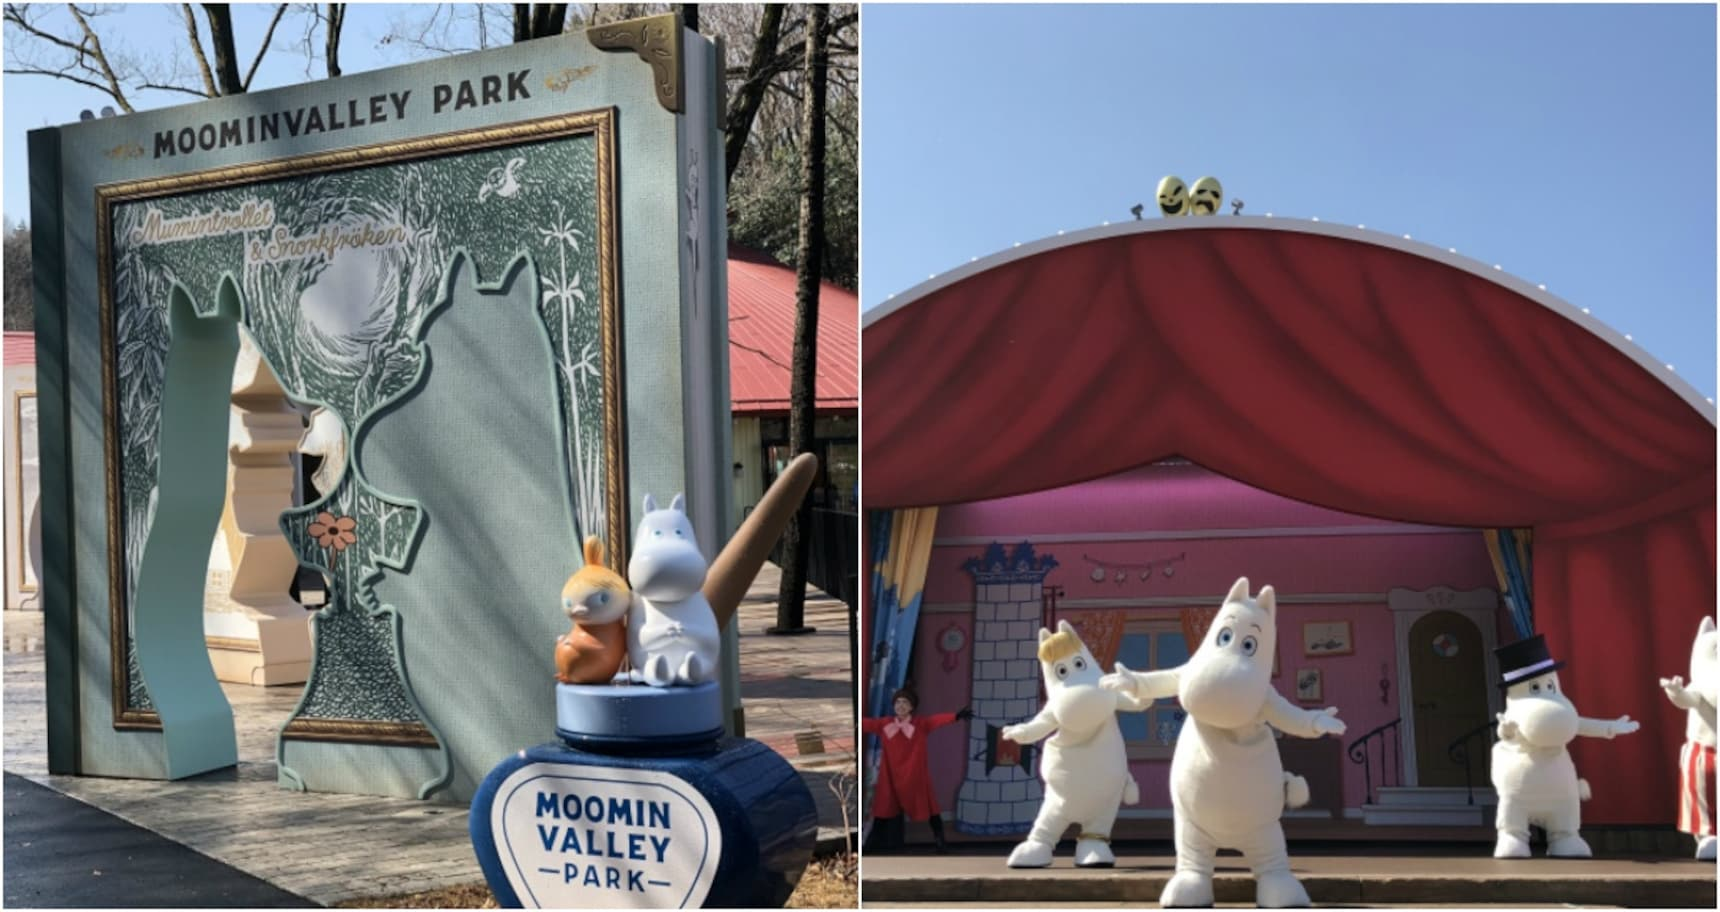 Enjoy the Magic of Moomin at Moominvalley Park